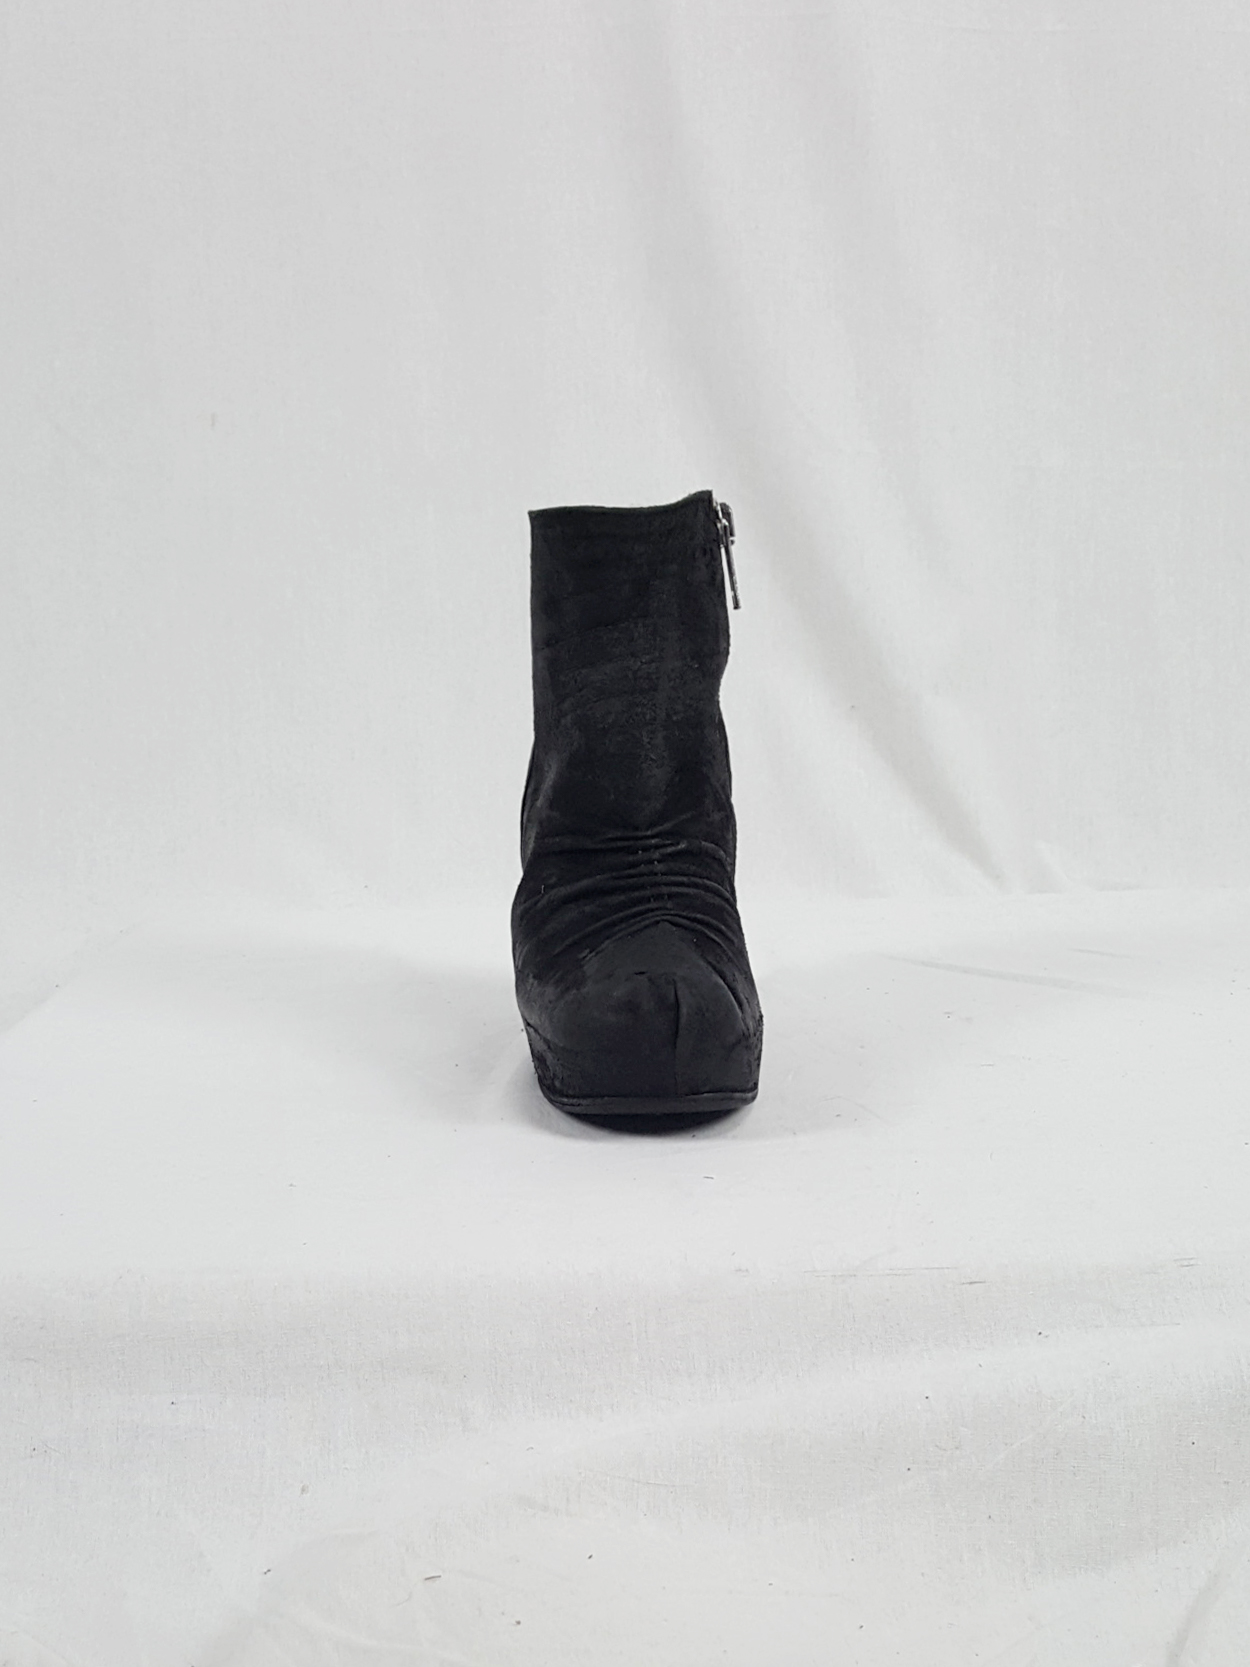 Rick Owens black suede ankle boots with wedge heel and hidden platform (37.5)